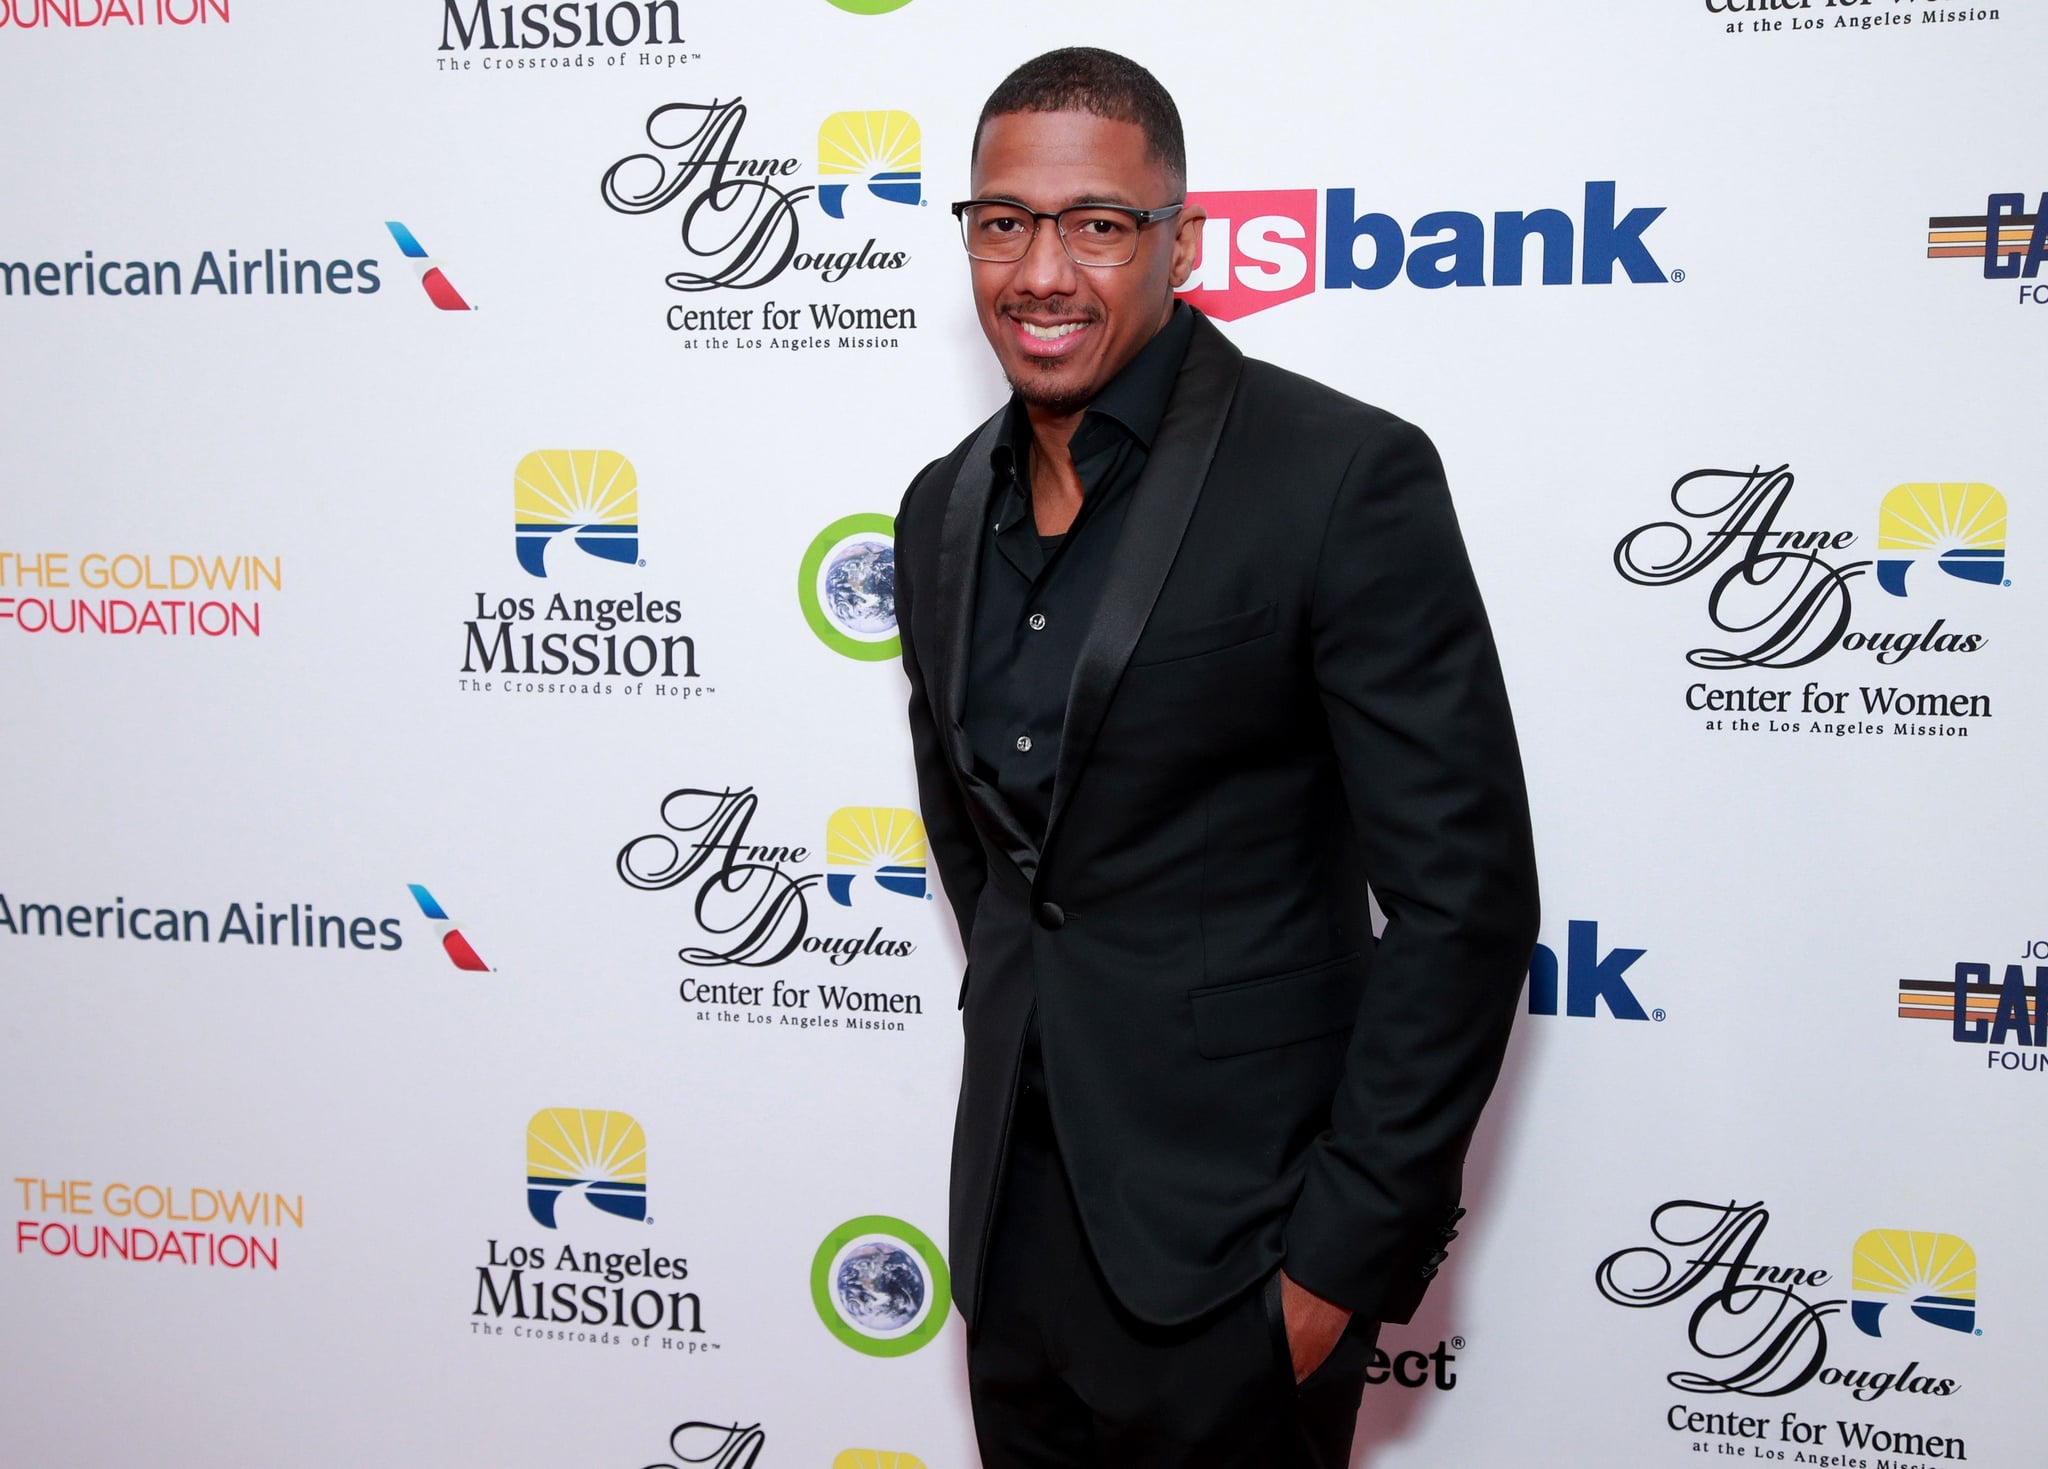 BEVERLY HILLS, CALIFORNIA - OCTOBER 24: Nick Cannon attends The Los Angeles Mission Legacy of Vision Gala at The Beverly Hilton Hotel on October 24, 2019 in Beverly Hills, California. (Photo by Rich Fury/Getty Images)